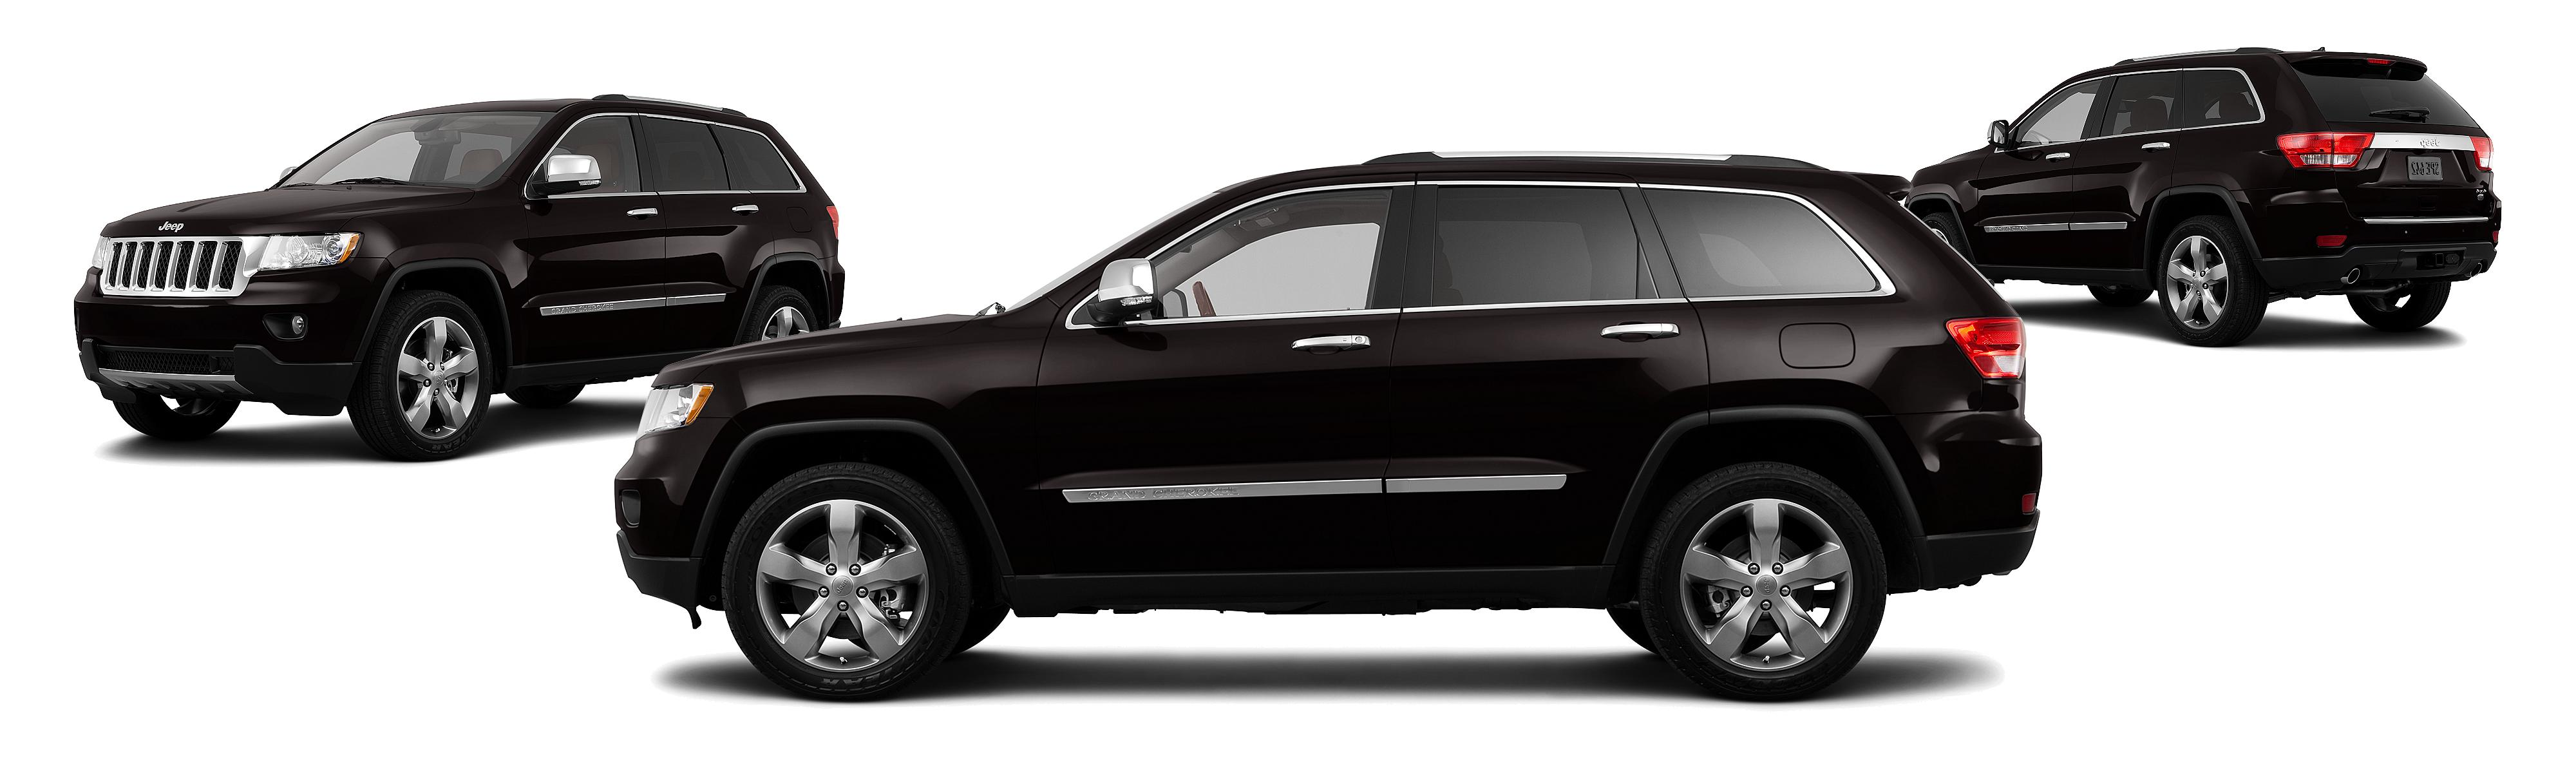 jeep grand dsc about capsule srt cars the truth cherokee review